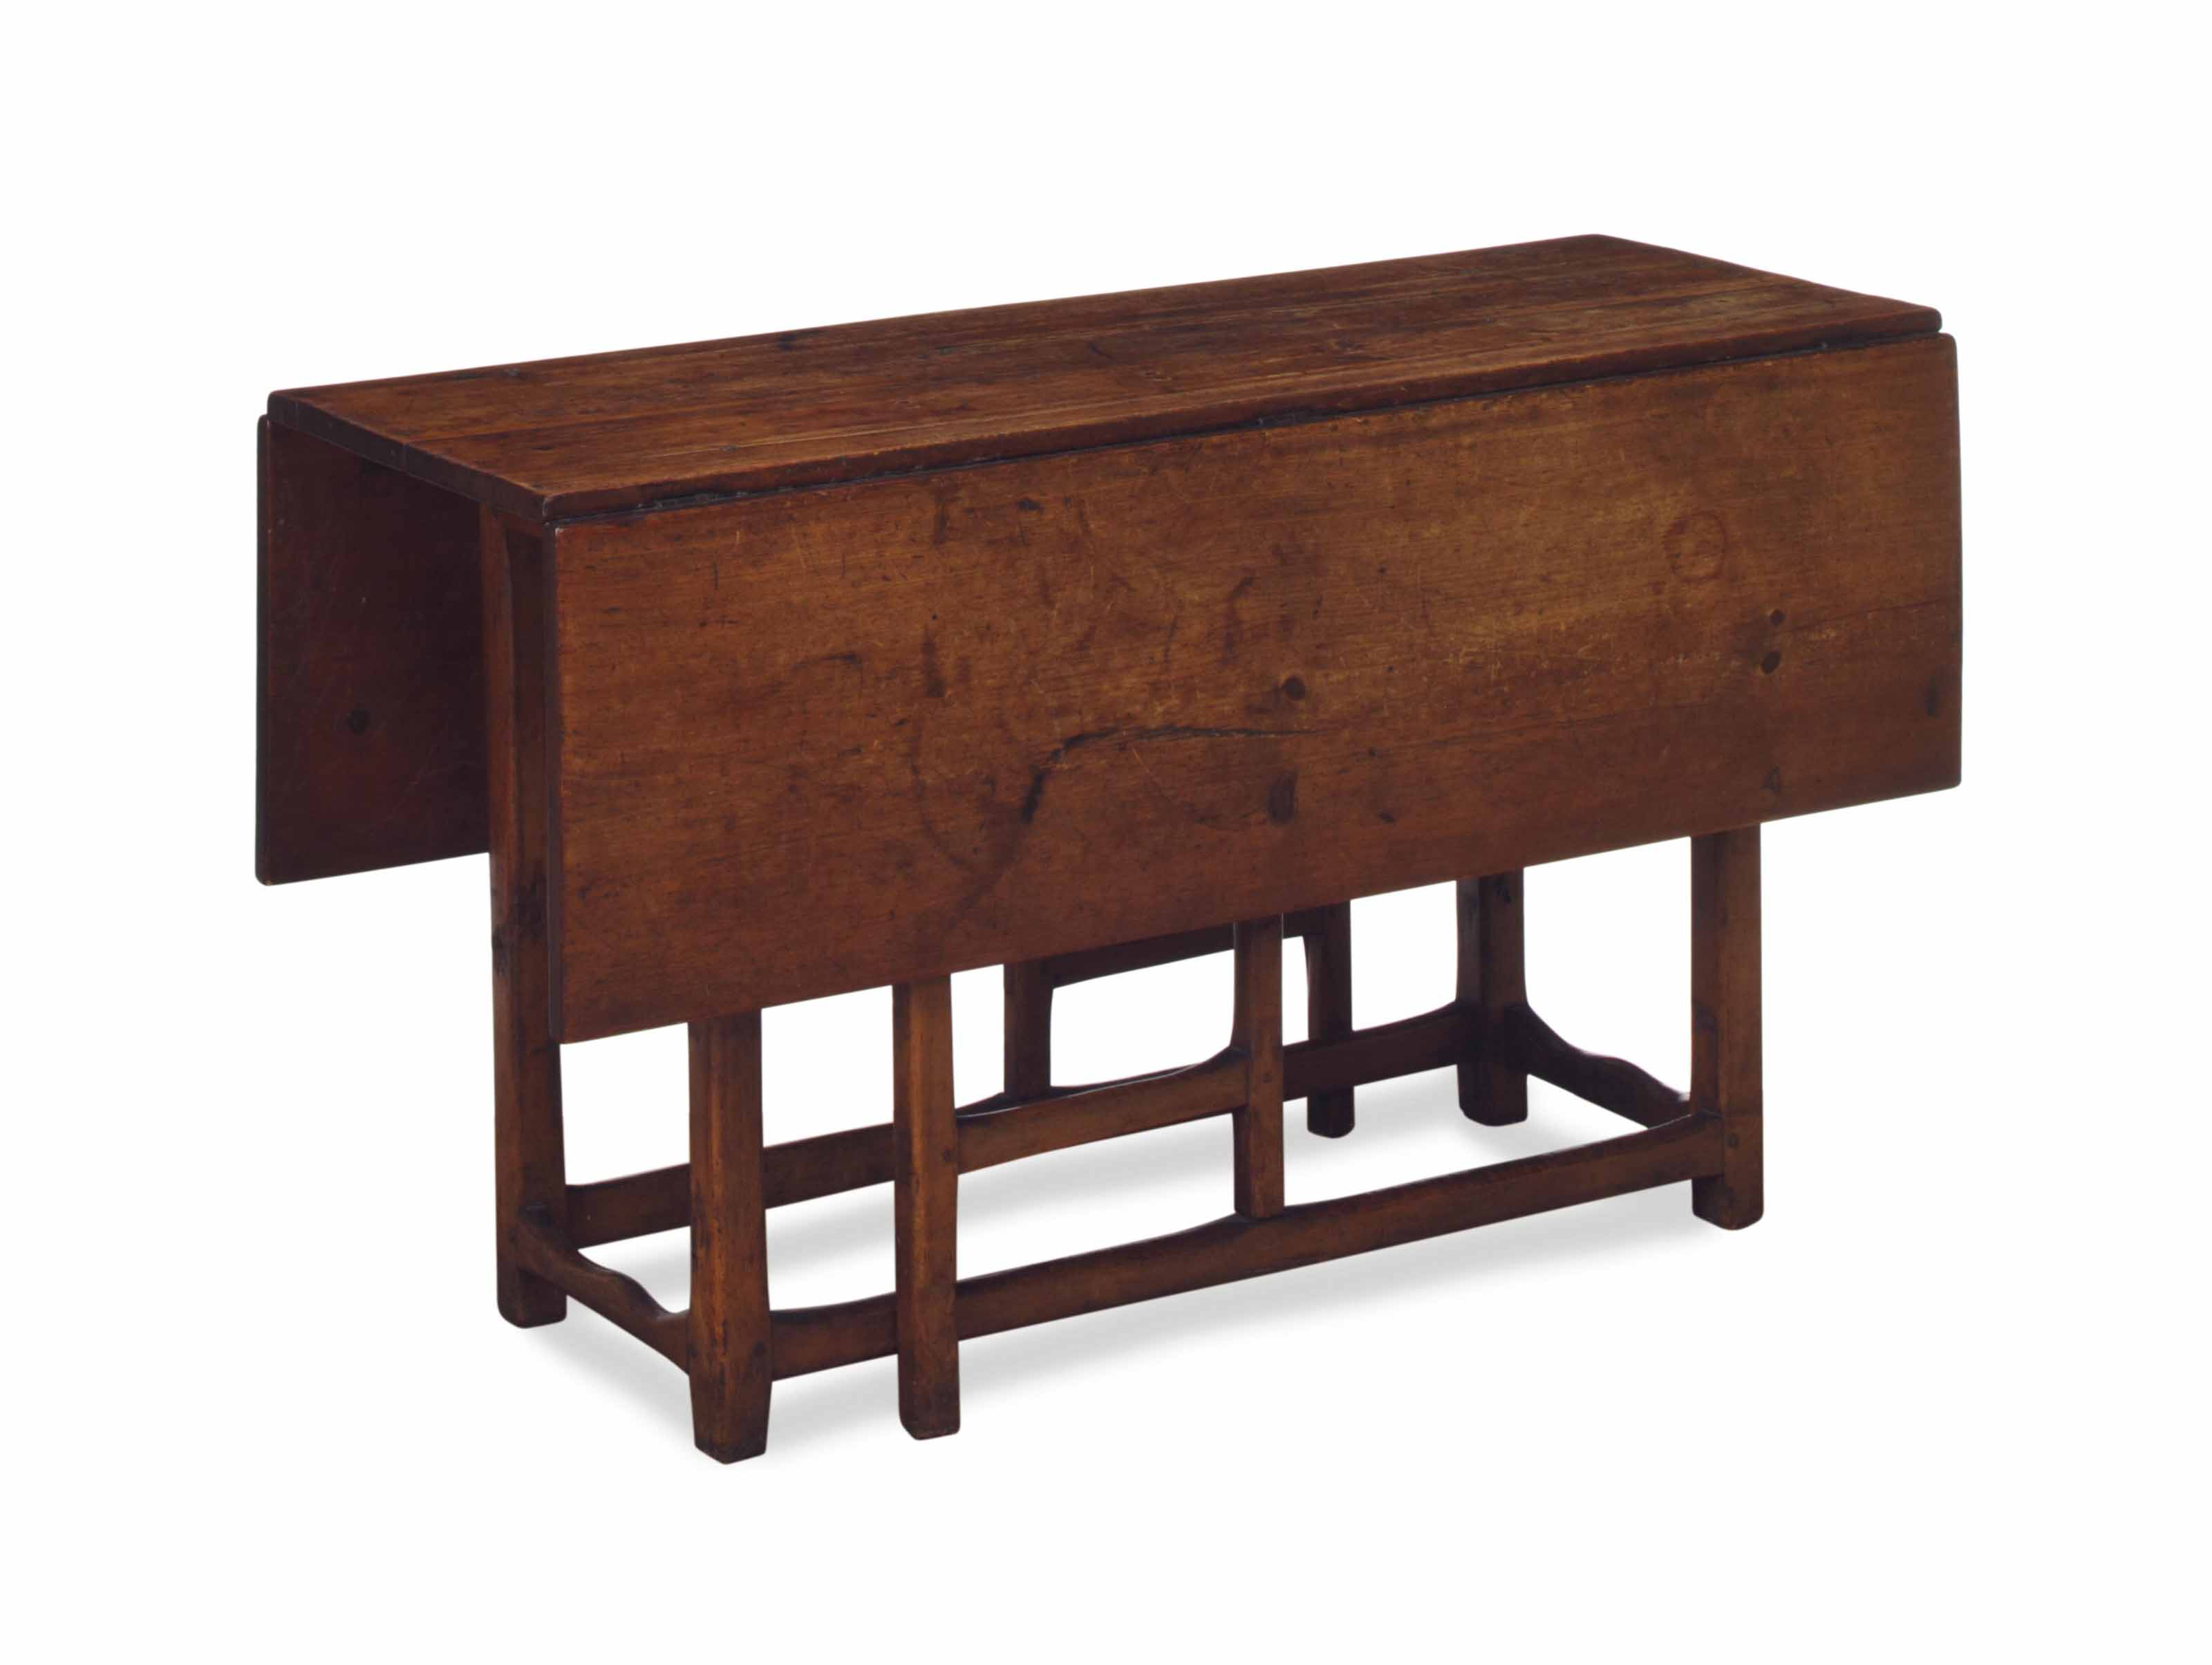 AN ENGLISH WALNUT AND FRUITWOOD PEMBROKE TABLE,